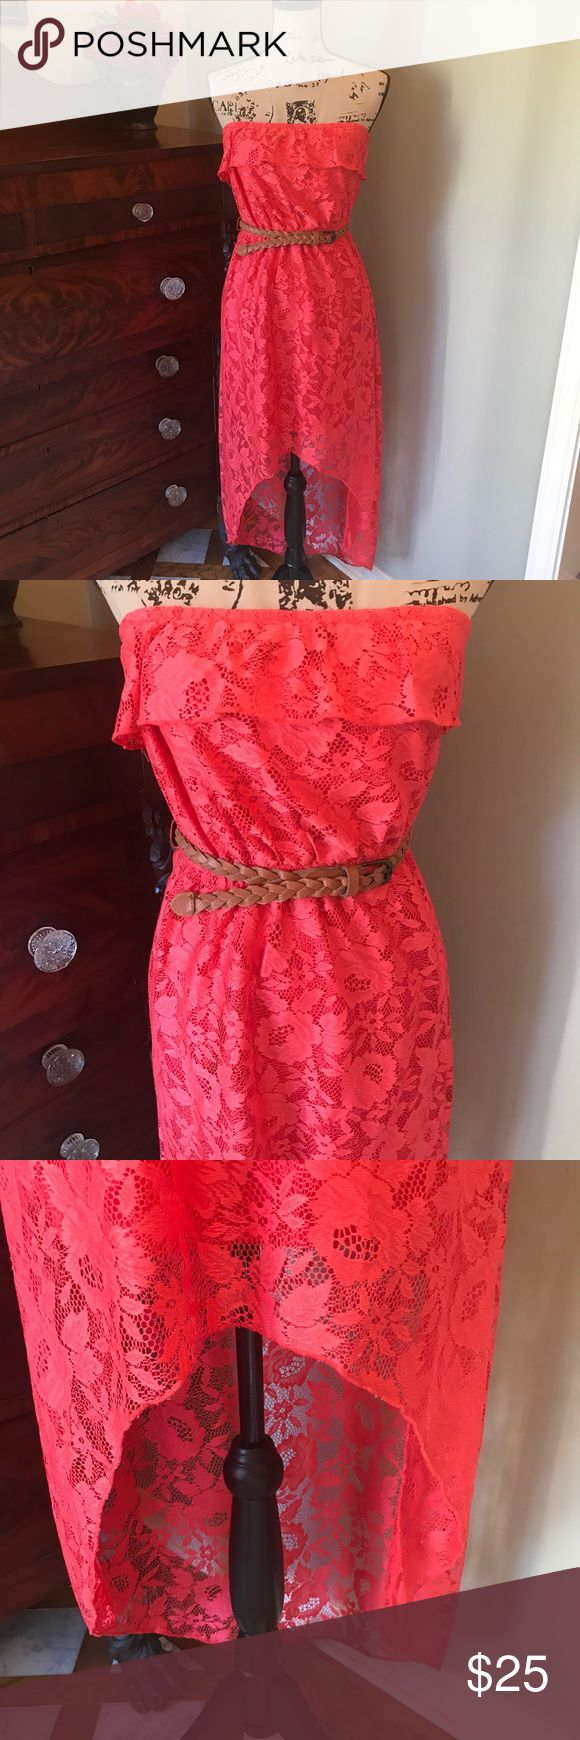 💖 Trixxi High Low Coral Lace Dress w Belt. S Shorter in the front than the back. Lined but liner only comes midway. Braided brown belt. Top Ruffle. Excellent condition. Strapless Trixxi Dresses